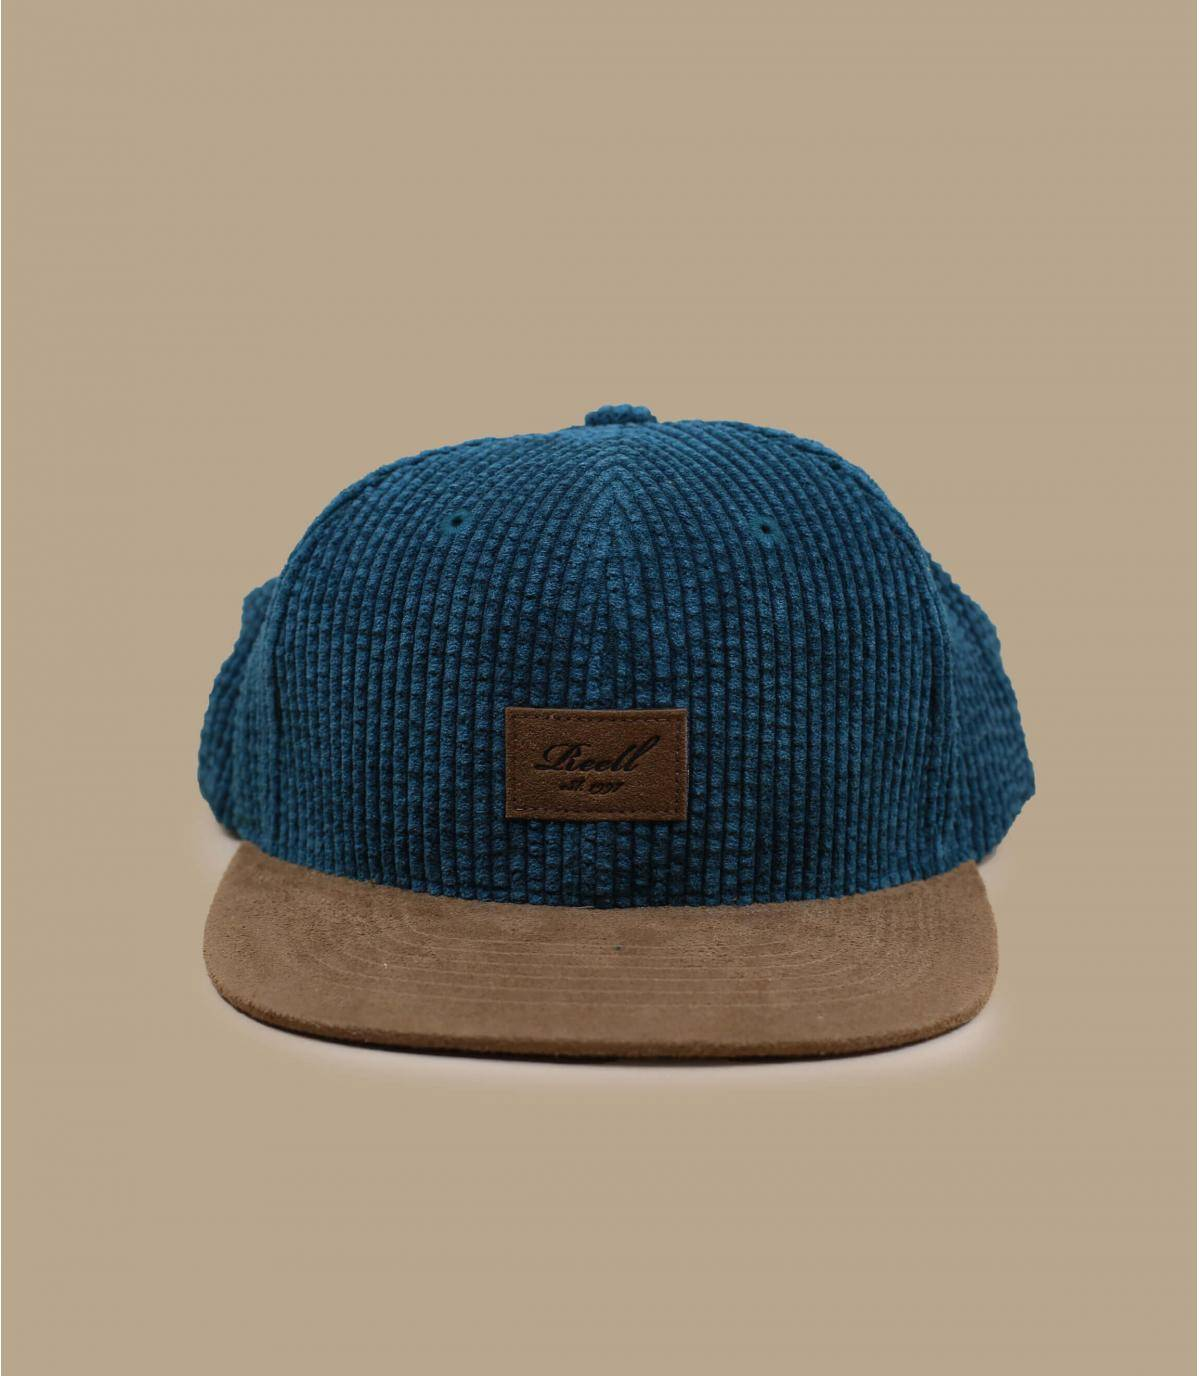 Details Suede Cap Cord forest green - afbeeling 2